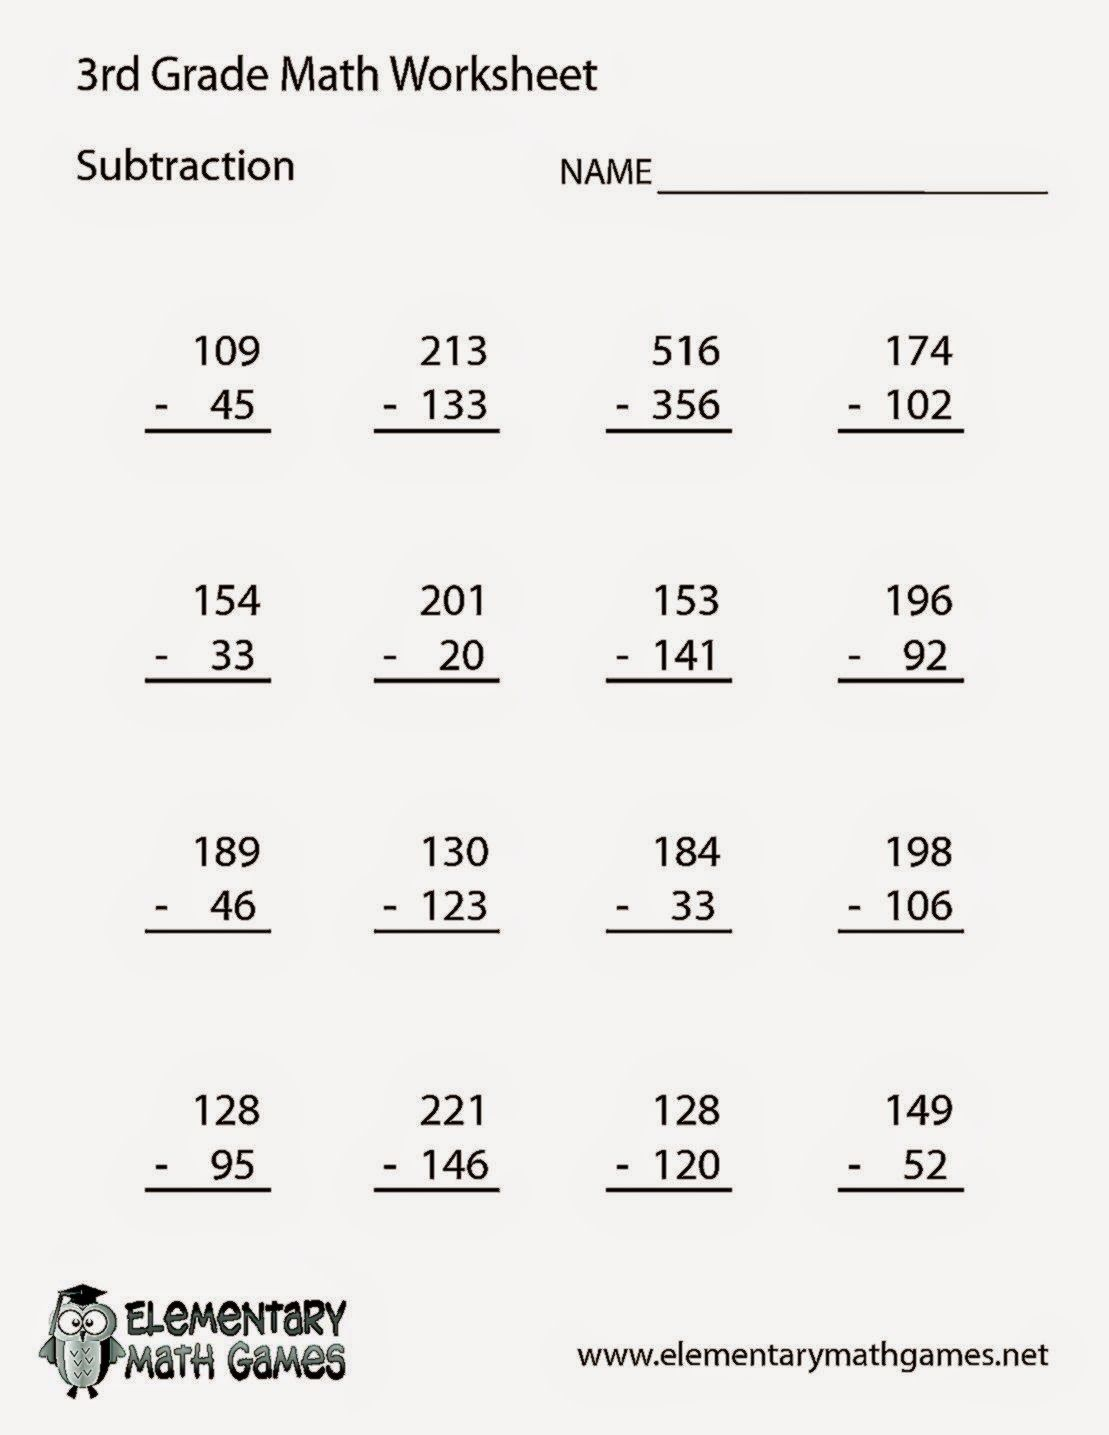 3rd Grade Math Worksheets 3rd Grade Math Worksheets Free Printable Math Worksheets Third Grade Math Worksheets